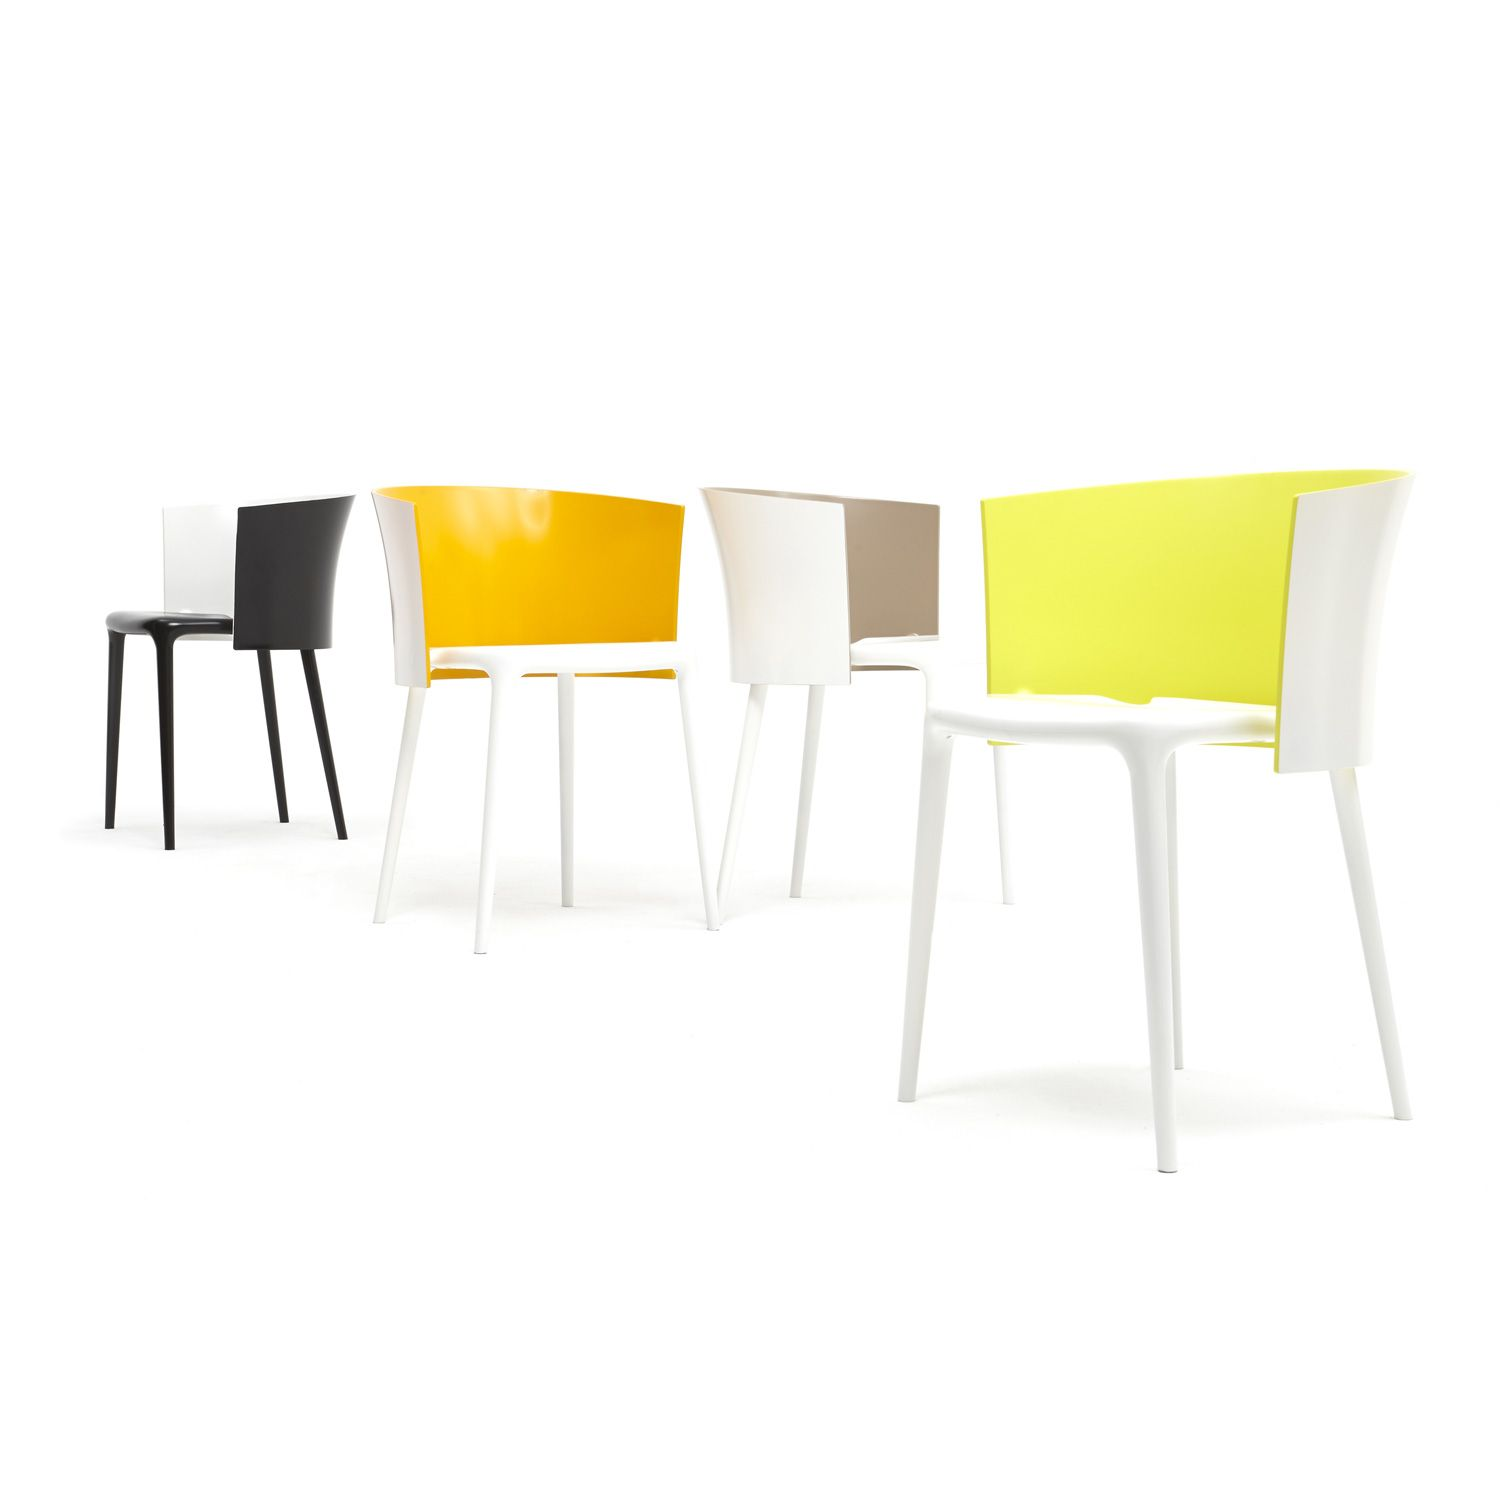 TOG Jono Pek Chair Base by Starck  Chairs  Chairs & Stools